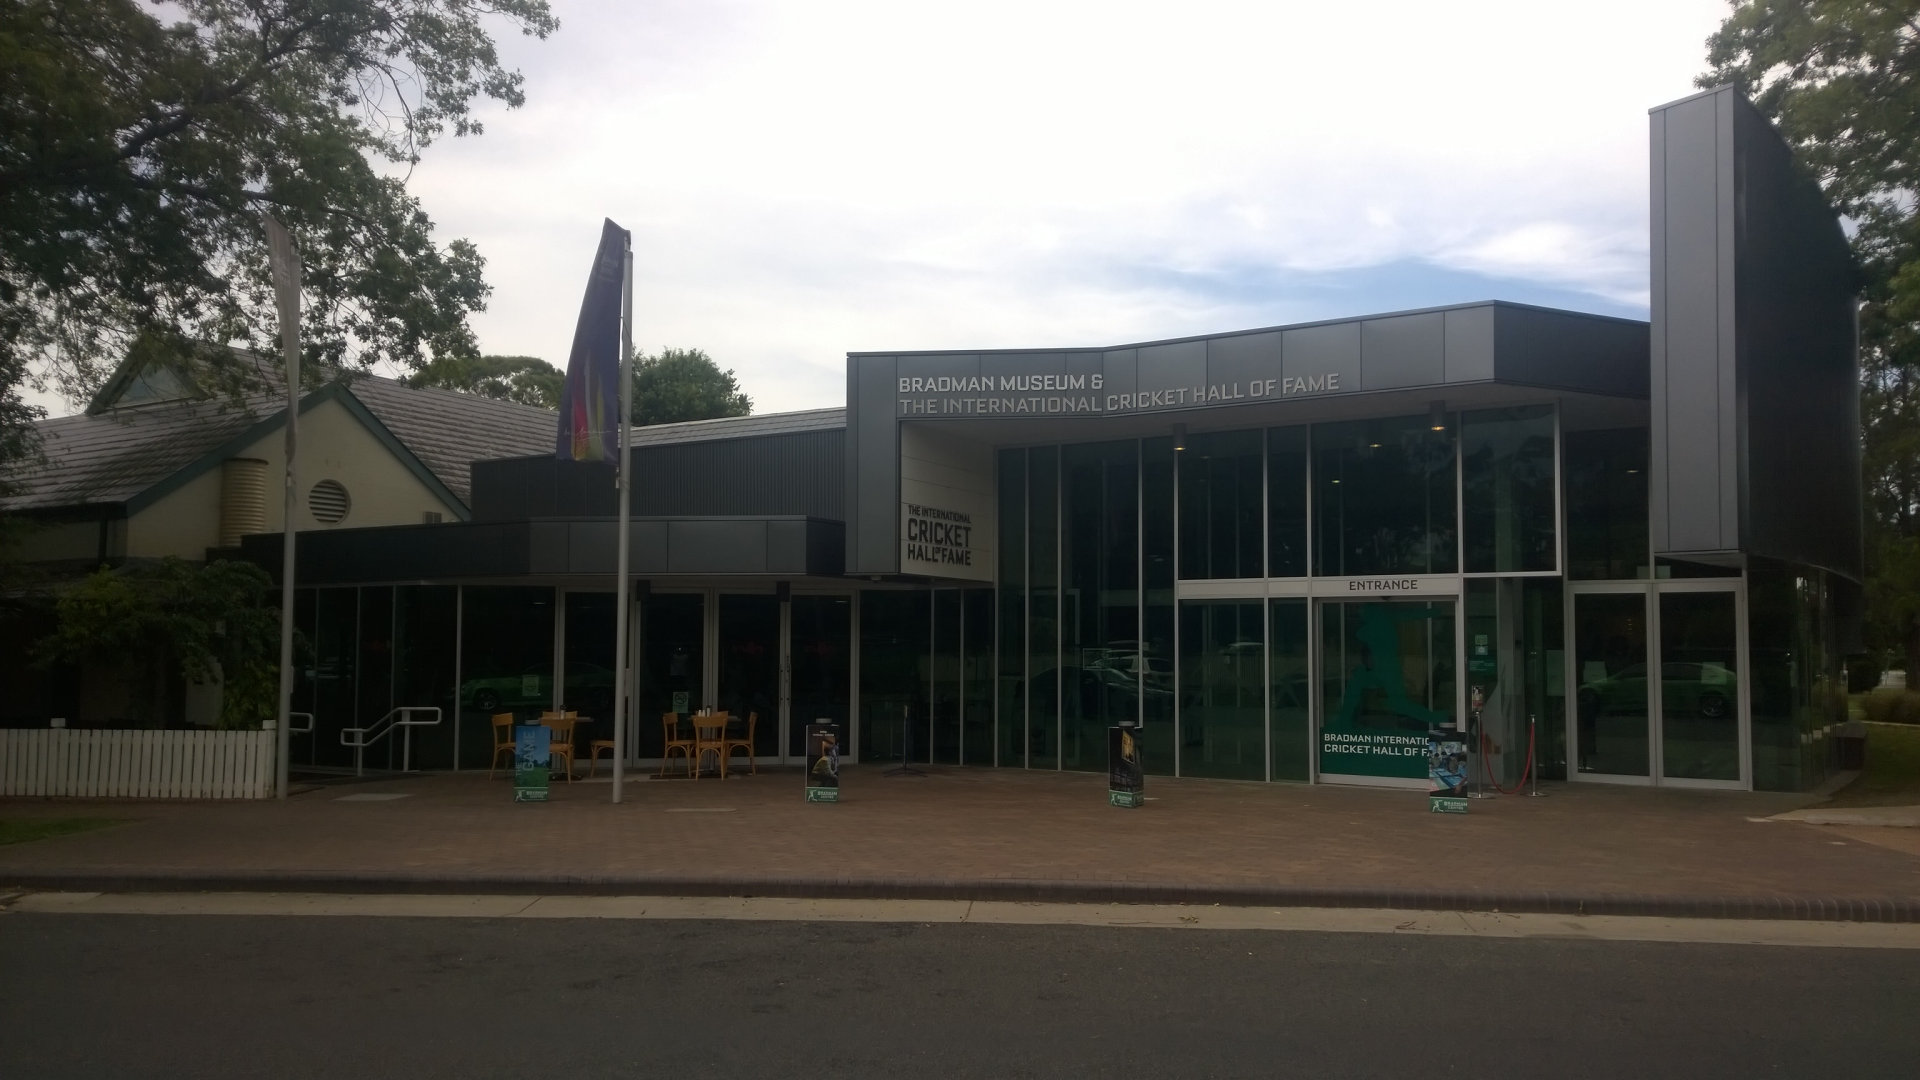 Entrance to the Bradman Museum in Bowral, exhibiting information about Sir Donald Bradman and the sport of cricket